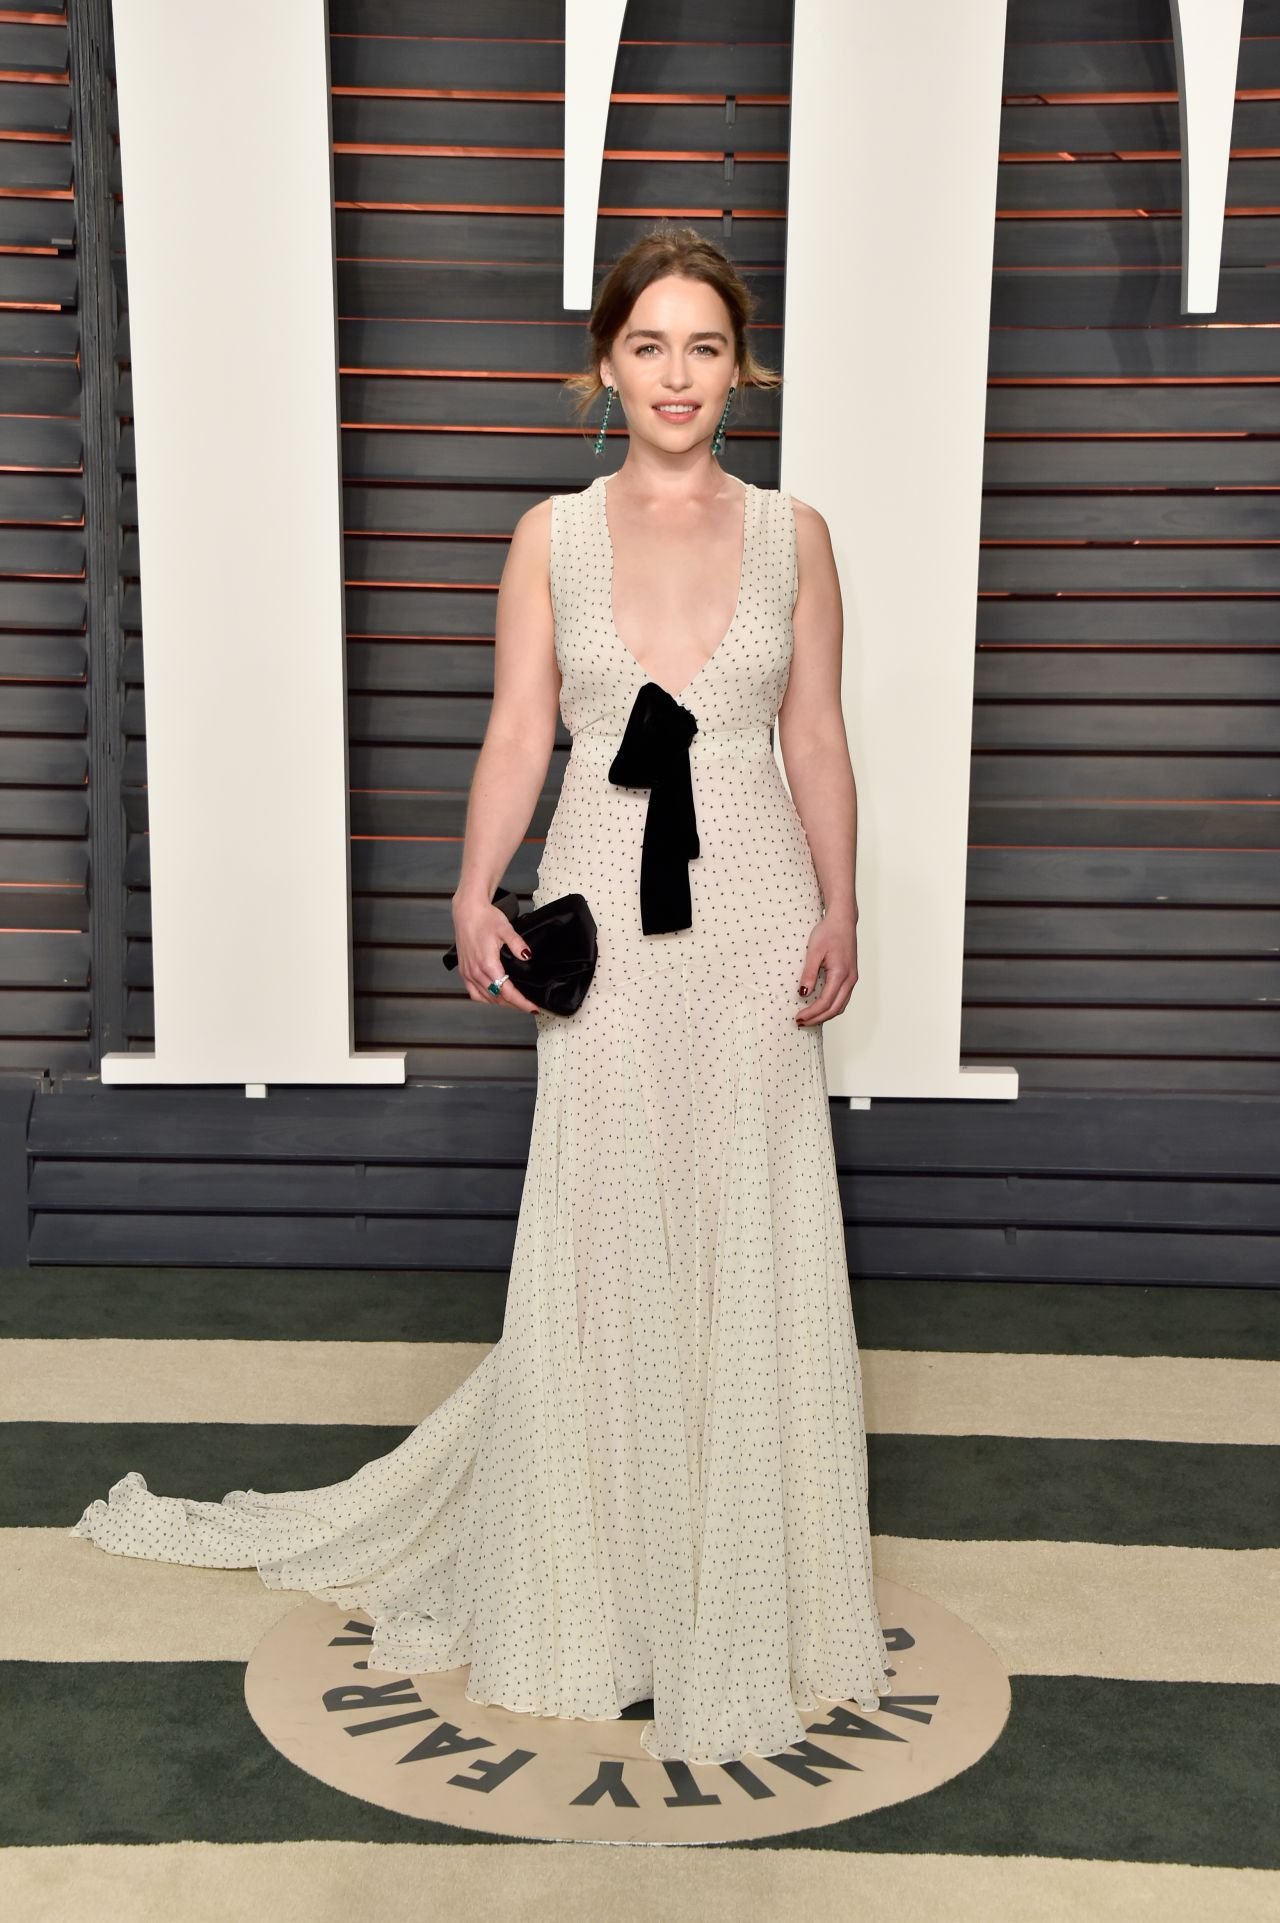 emilia-clarke-vanity-fair-oscar-2016-party-in-beverly-hills-ca-7